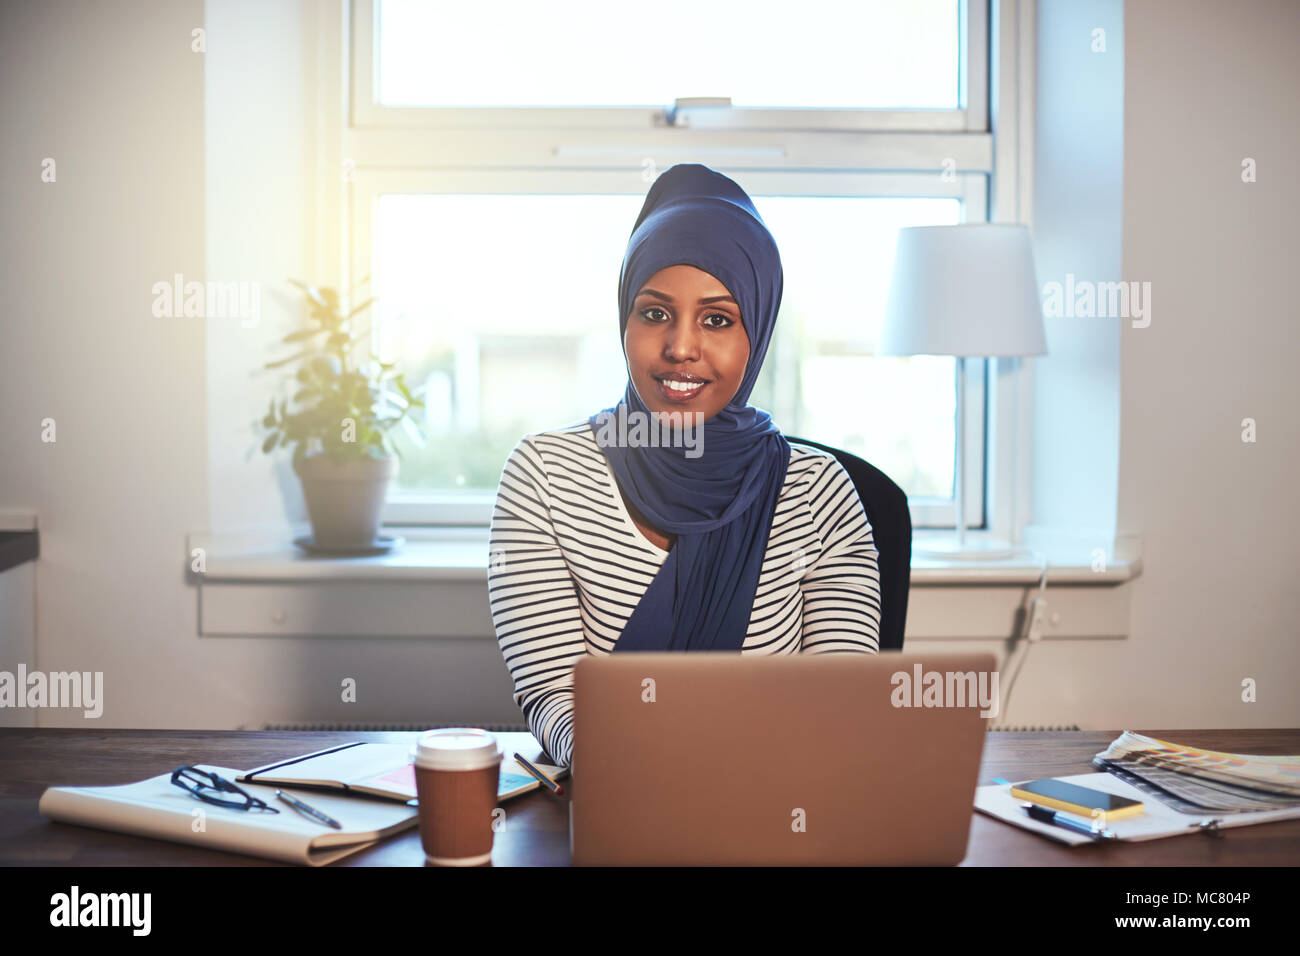 Young Arabic female entrepreneur wearing a hijab smiling confidently while working on a laptop in her home office Stock Photo